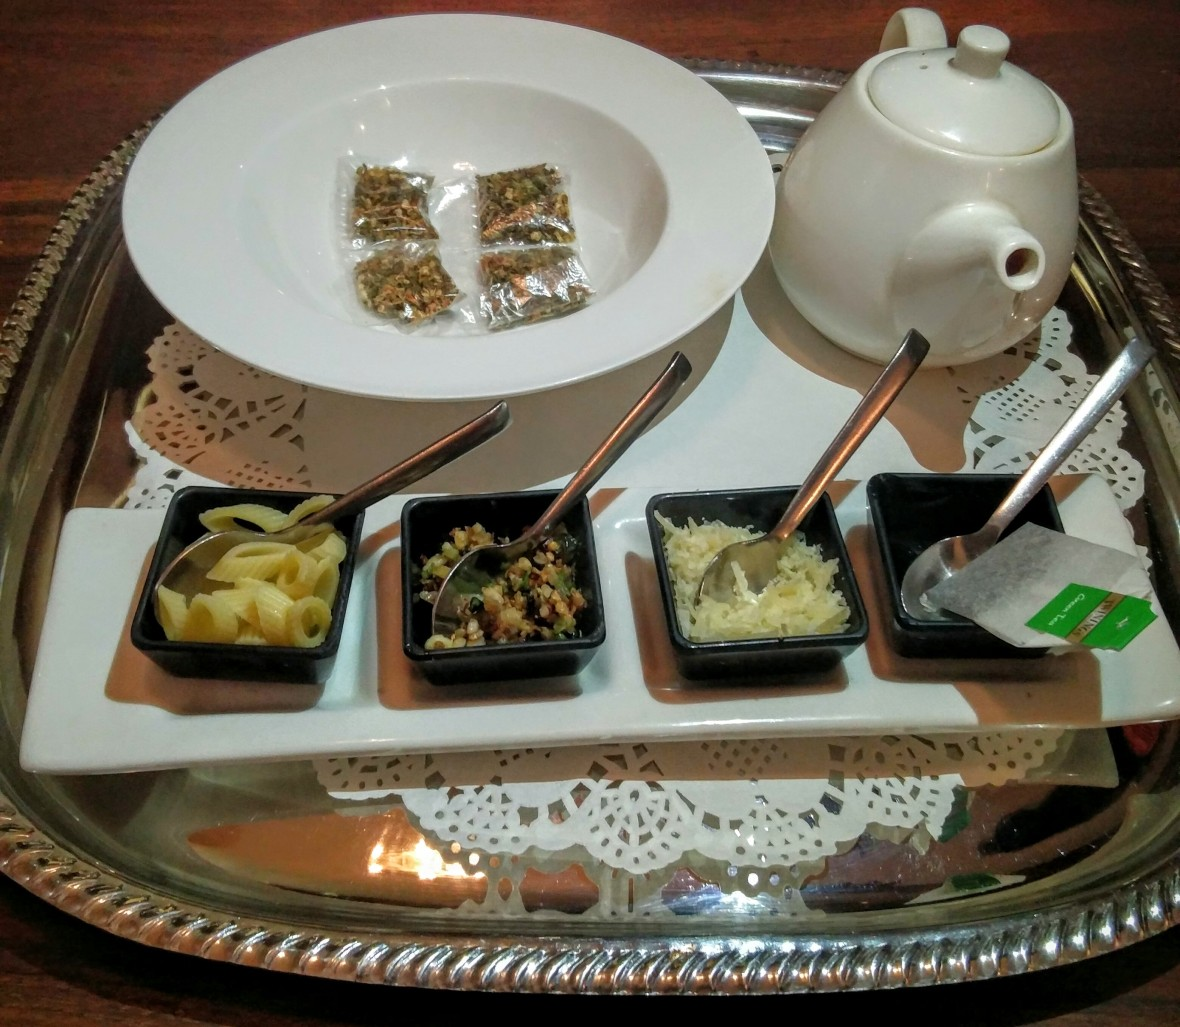 Minestrone Tea Set: A deconstructed version of the classic Italian minestrone soup, flavoured with green tea